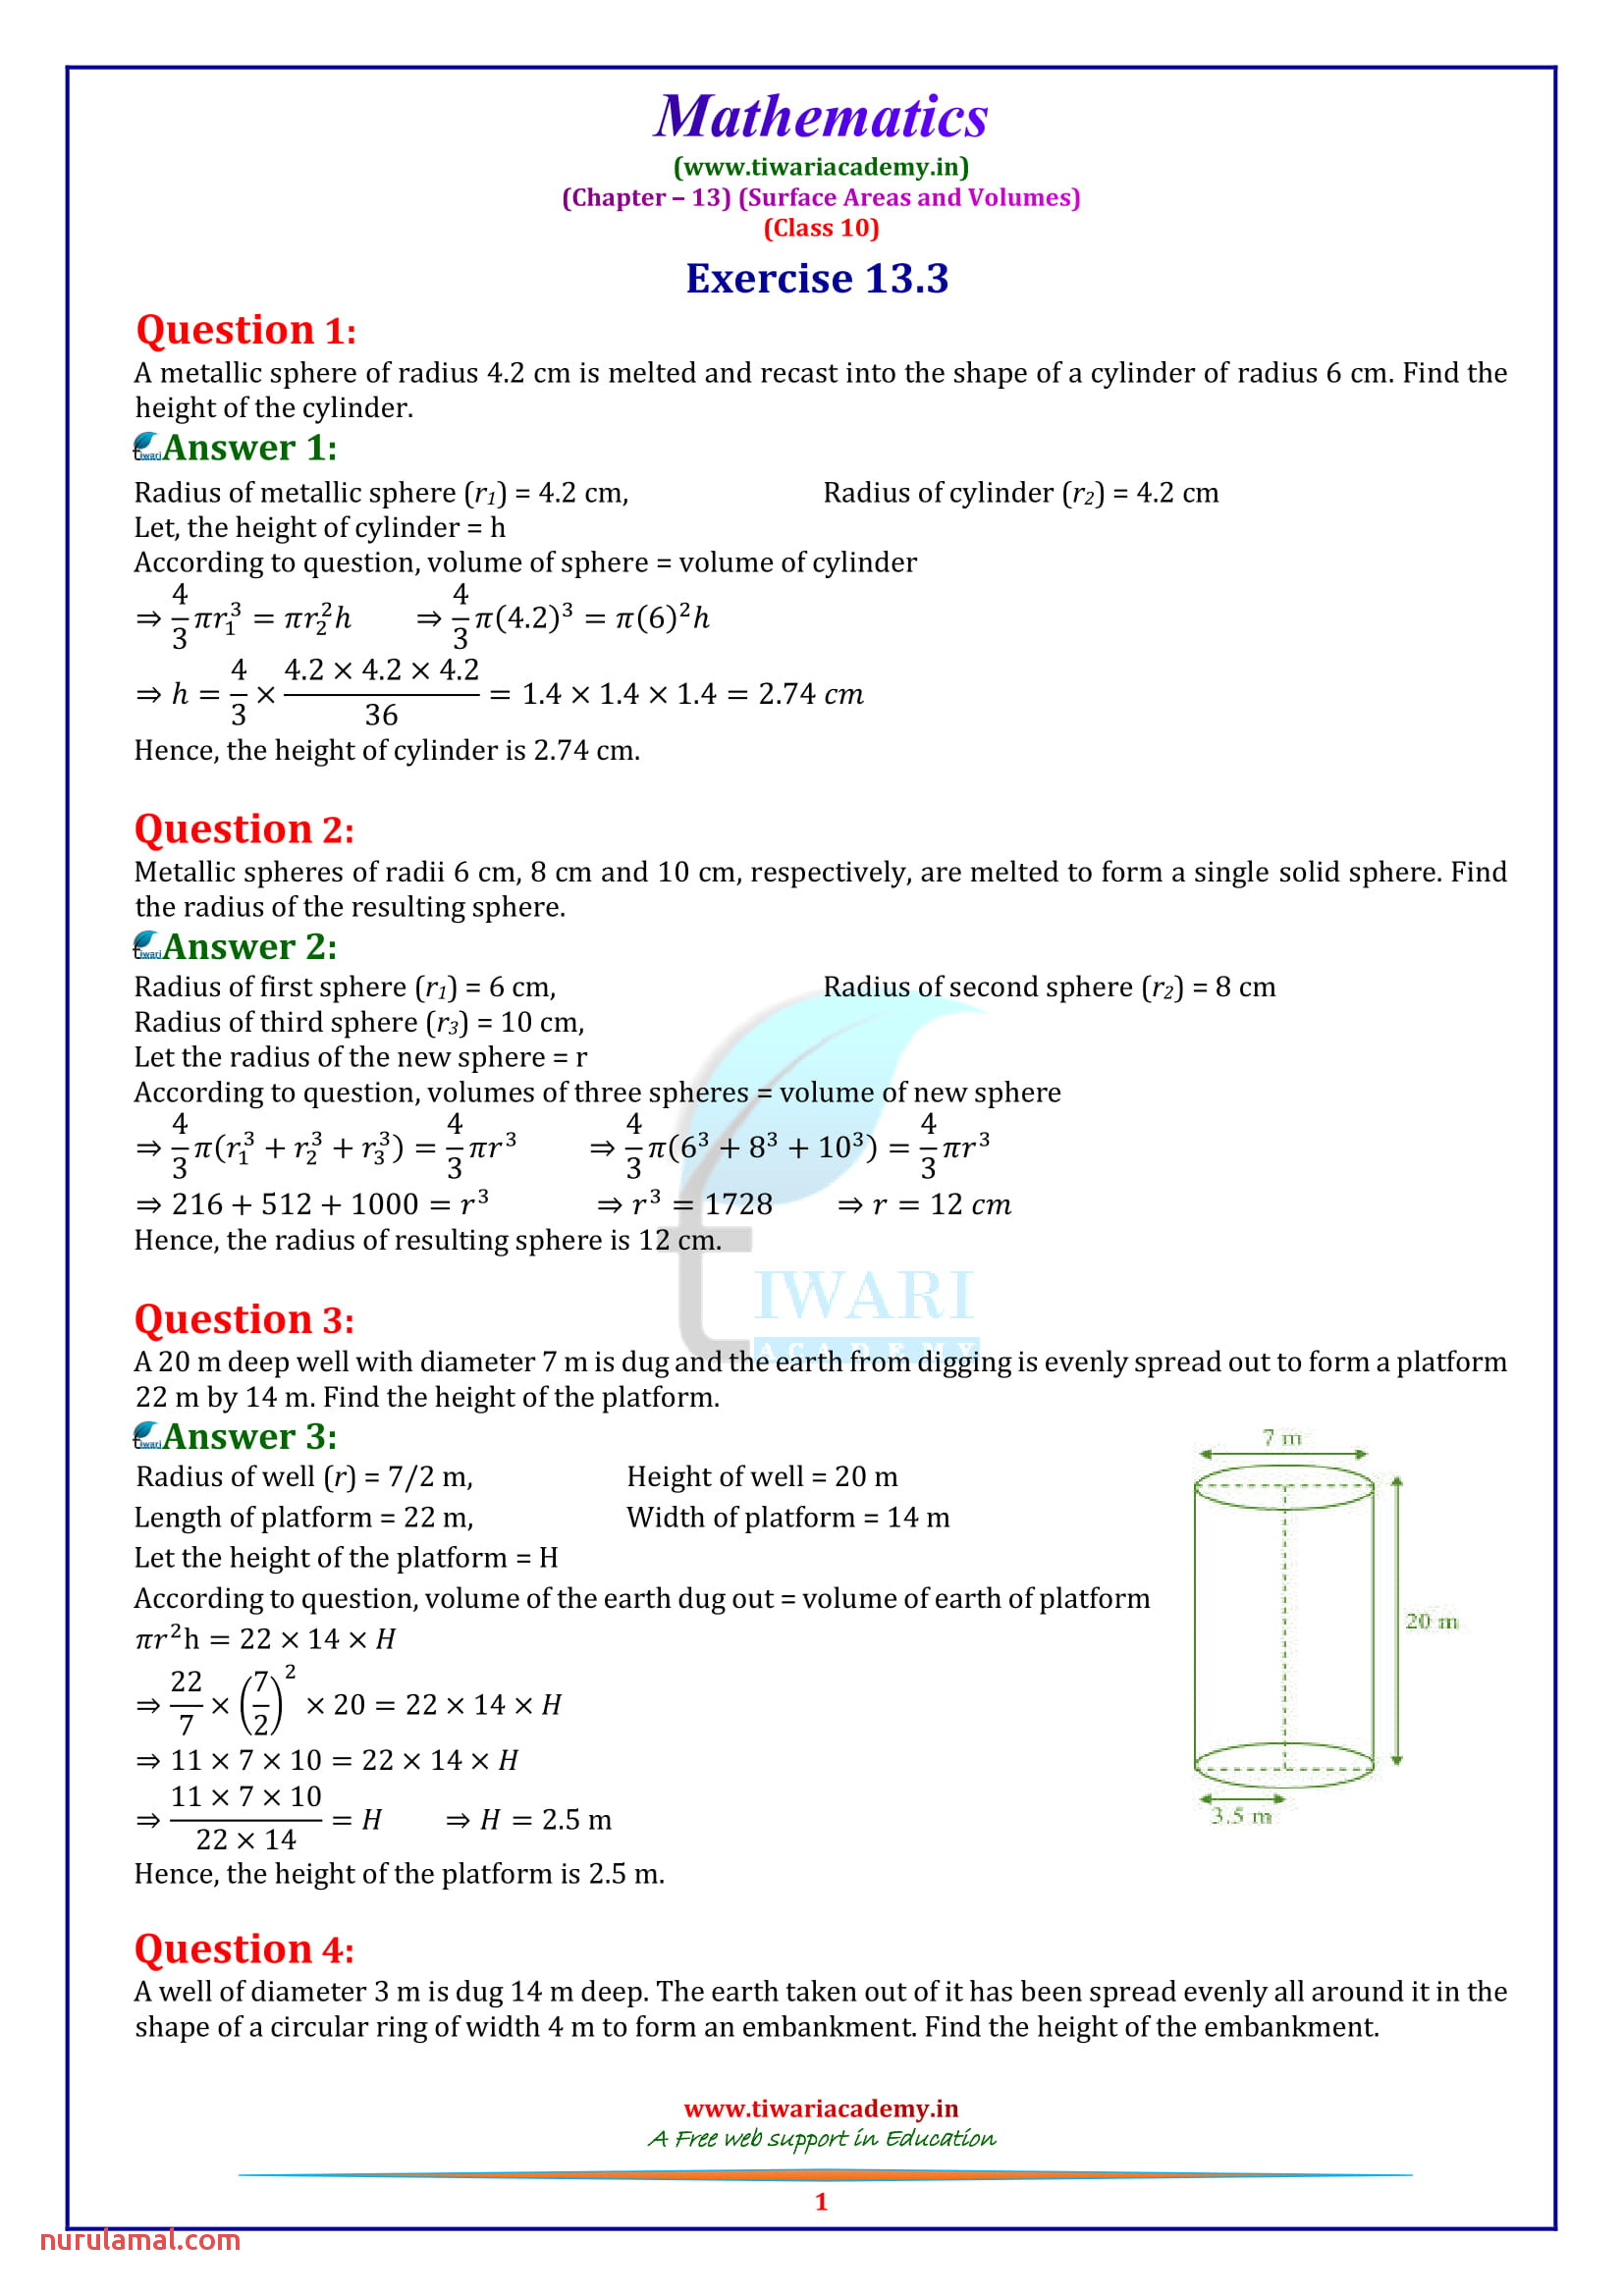 Ncert solutions for Class 10 Maths Chapter 13 Exercise 13 3